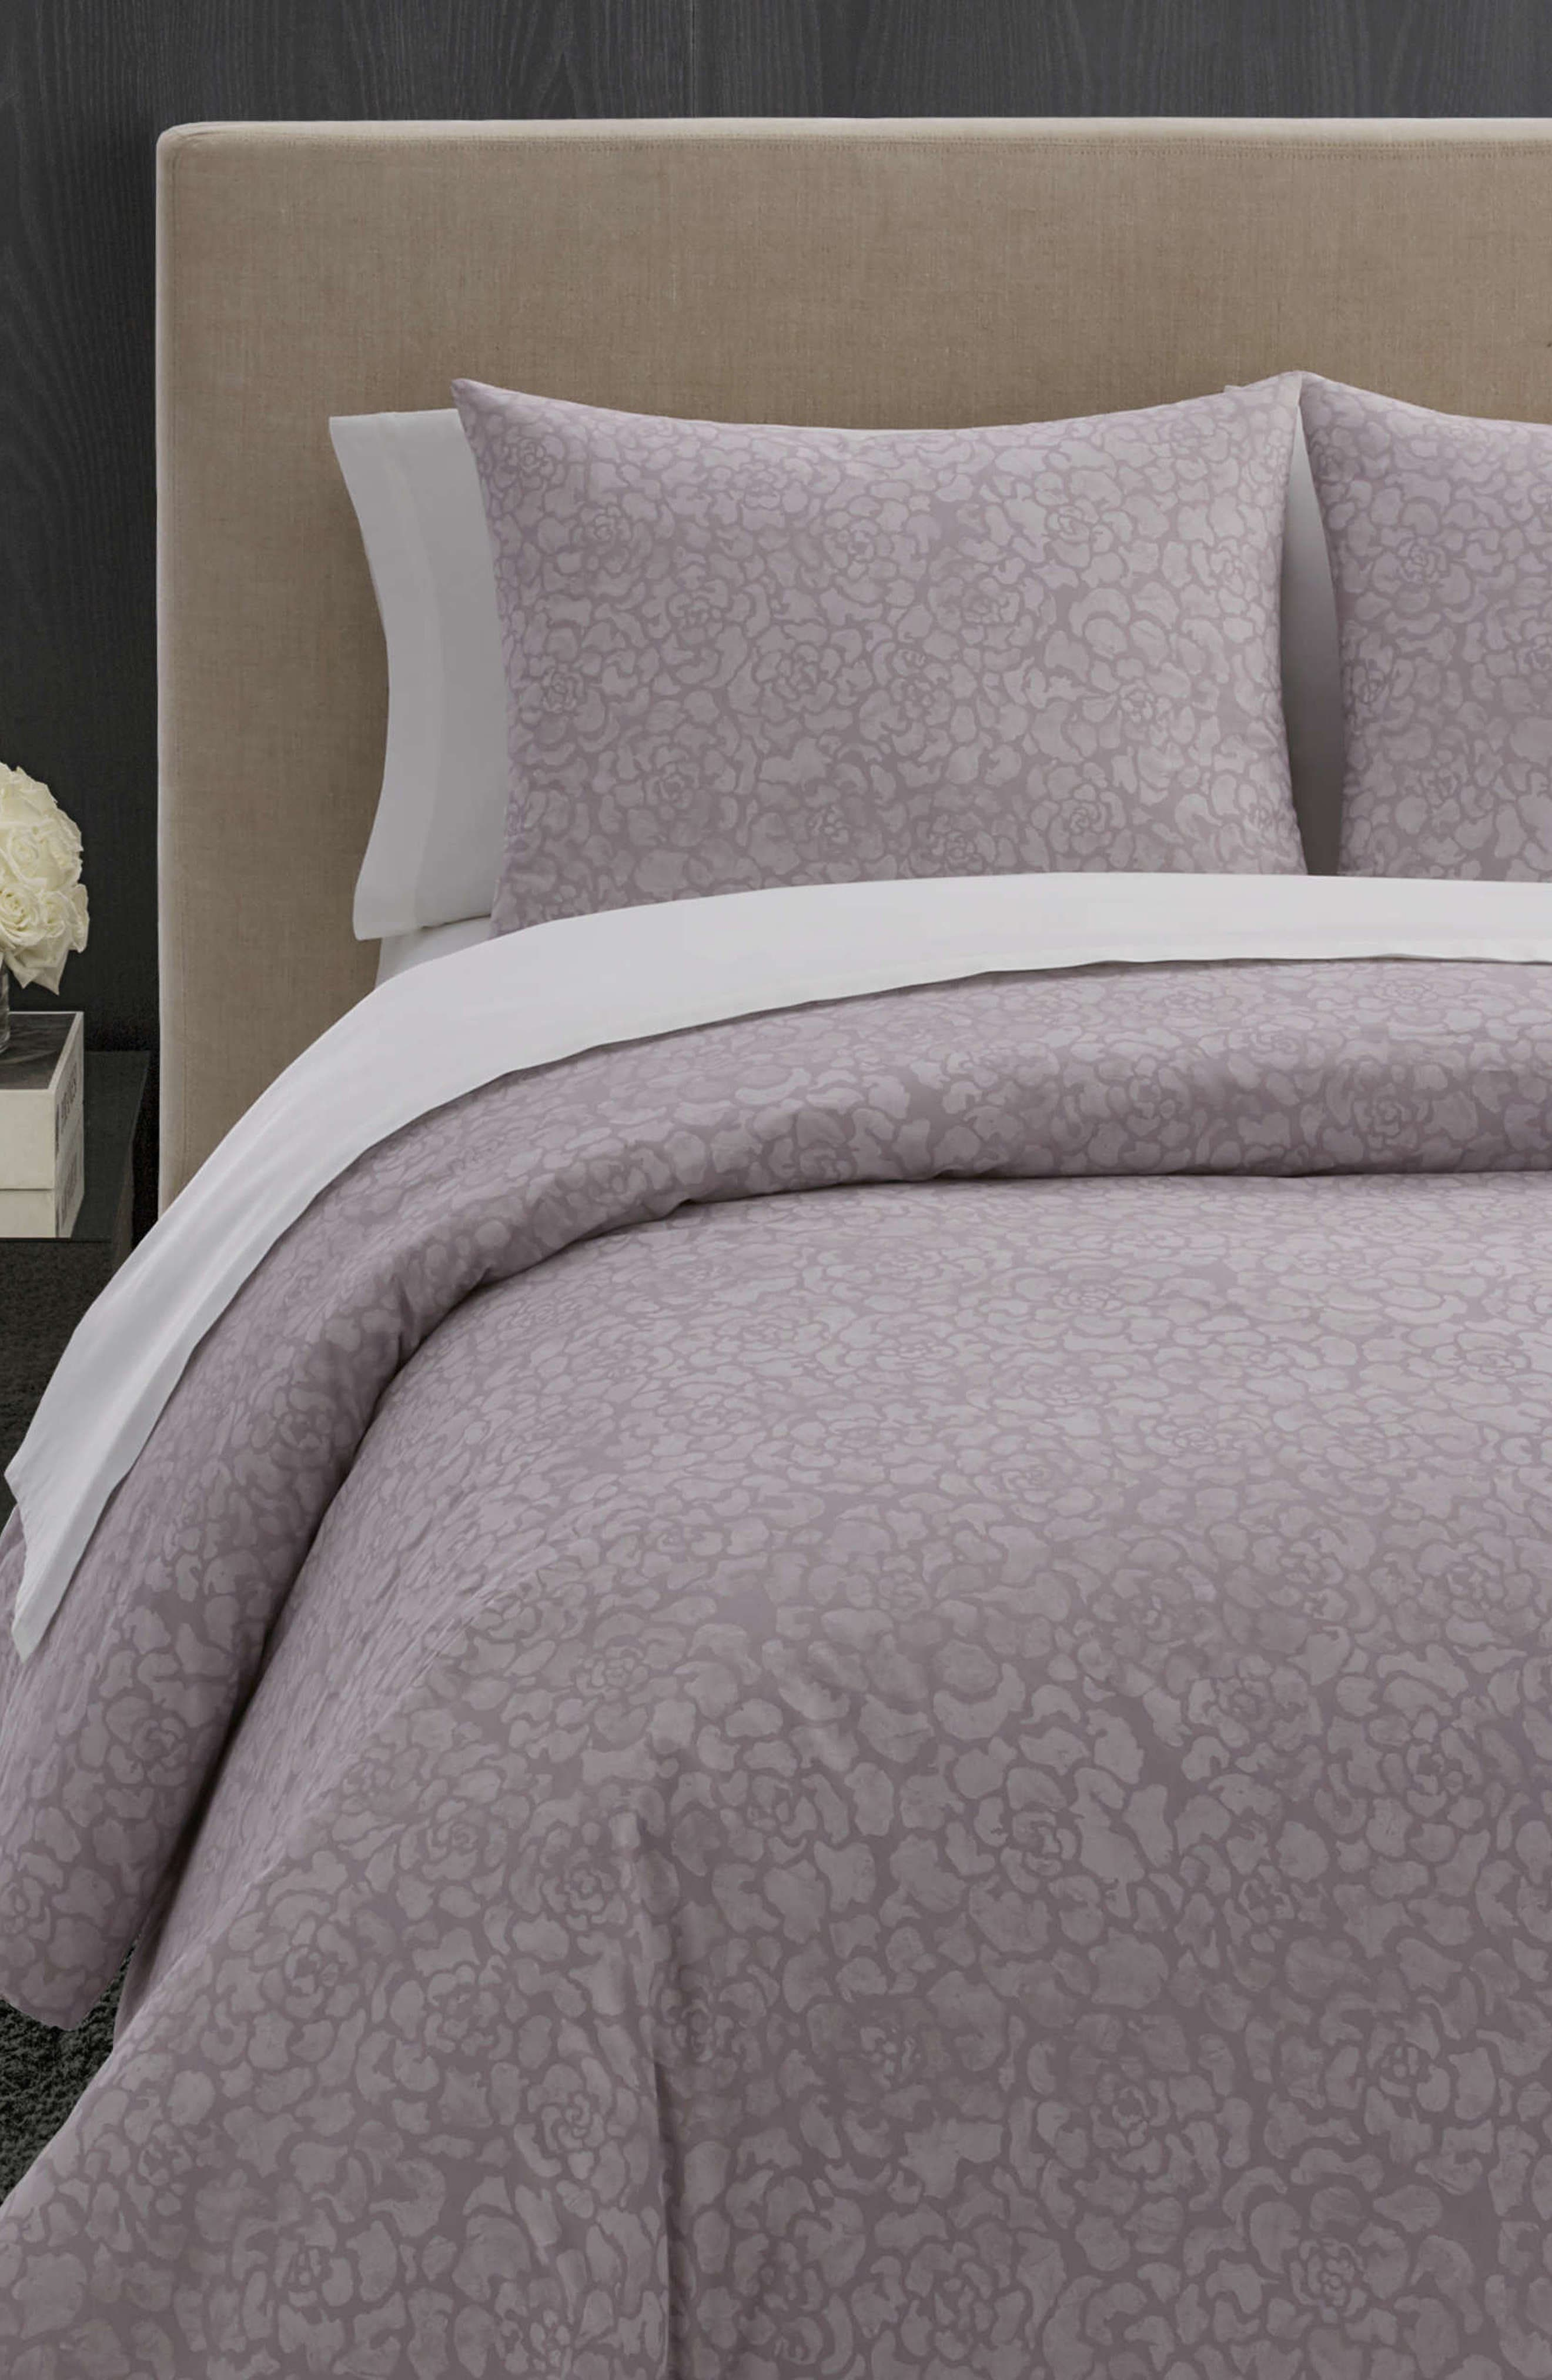 Textured Roses Comforter & Sham Set,                             Alternate thumbnail 2, color,                             LILAC